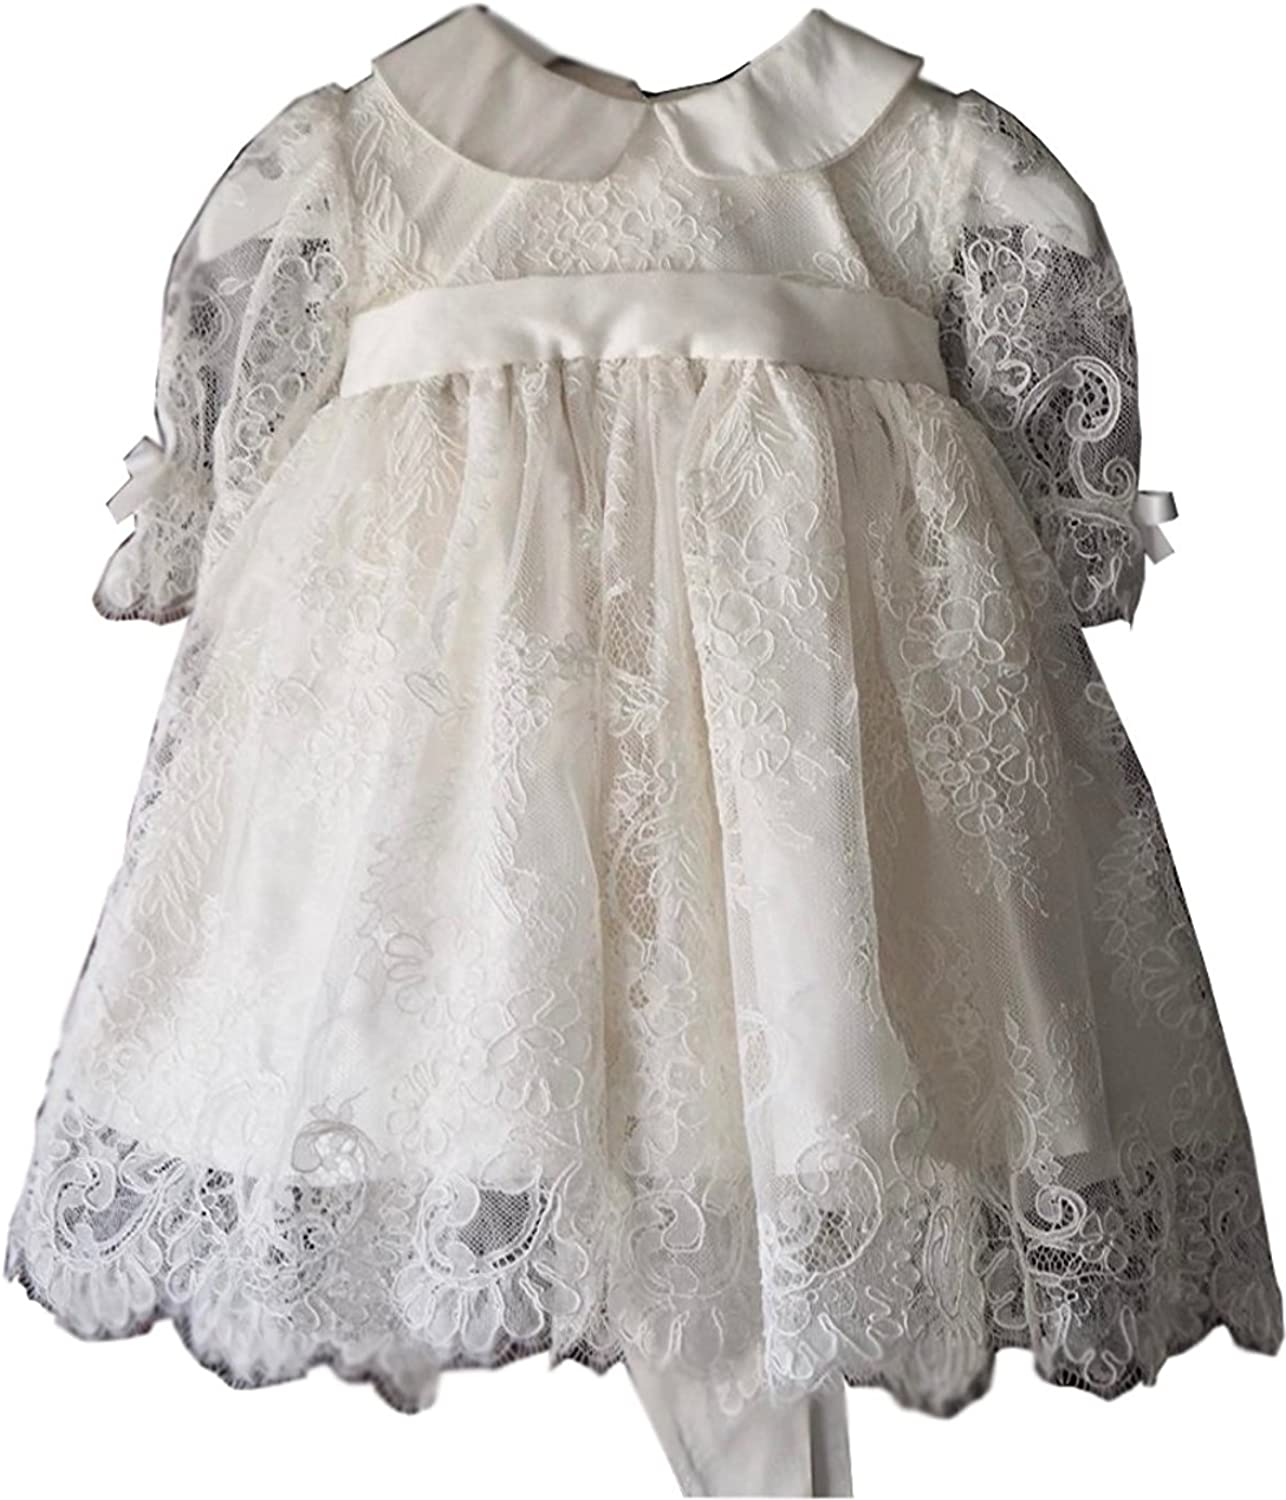 Kelaixiang Christening Gown Baby Girl Lace Toddler DEDICATION Dress For Age 0-24 Months